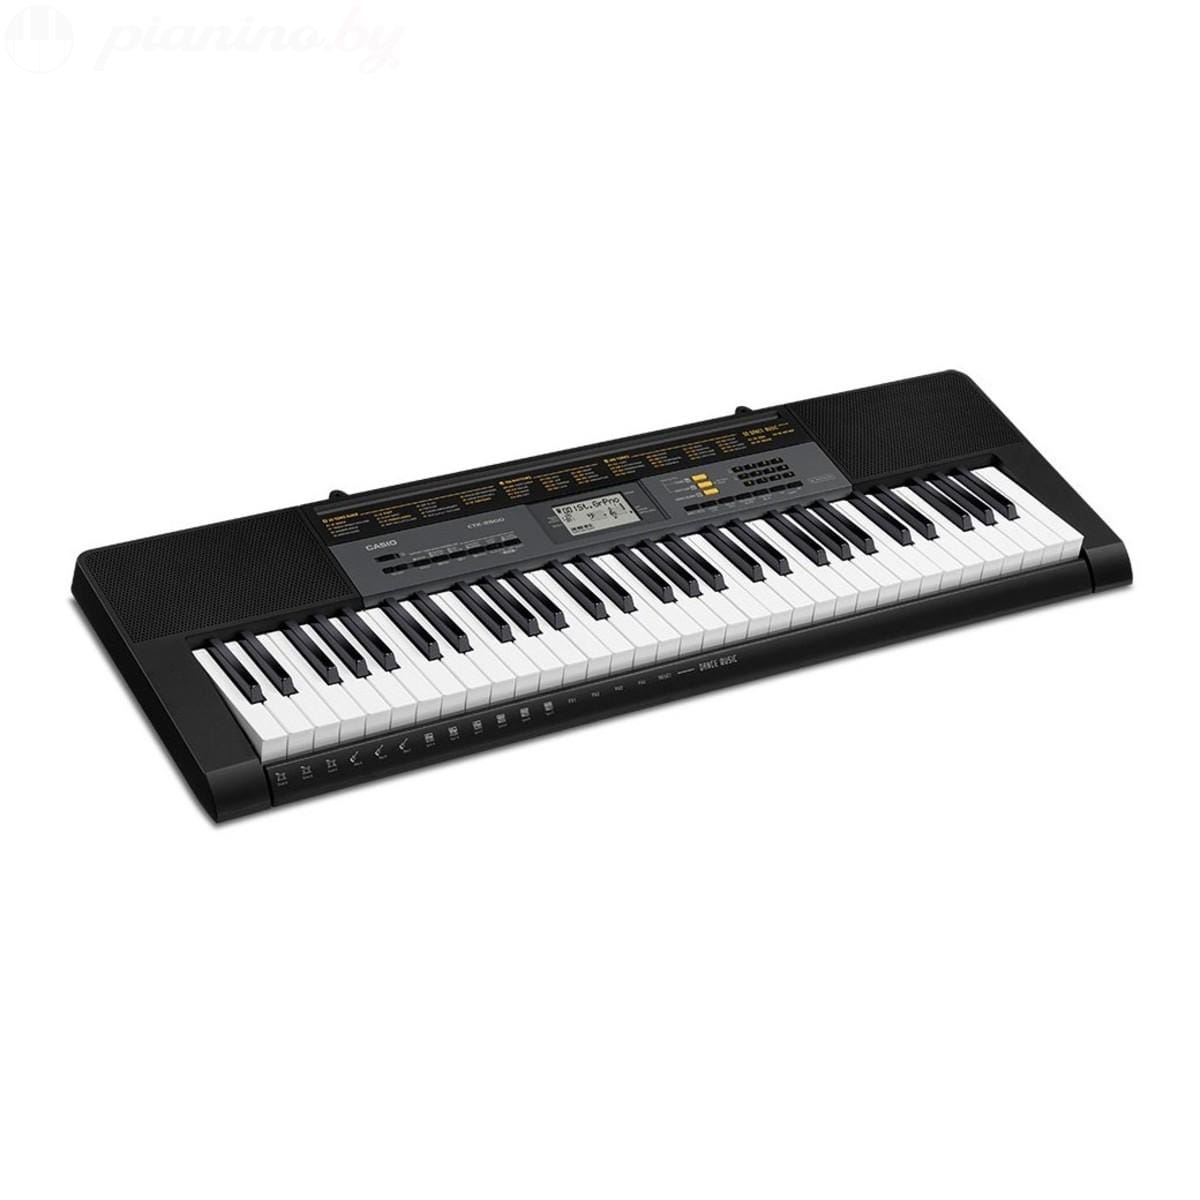 Синтезатор Casio CTK-2500 Фото 3